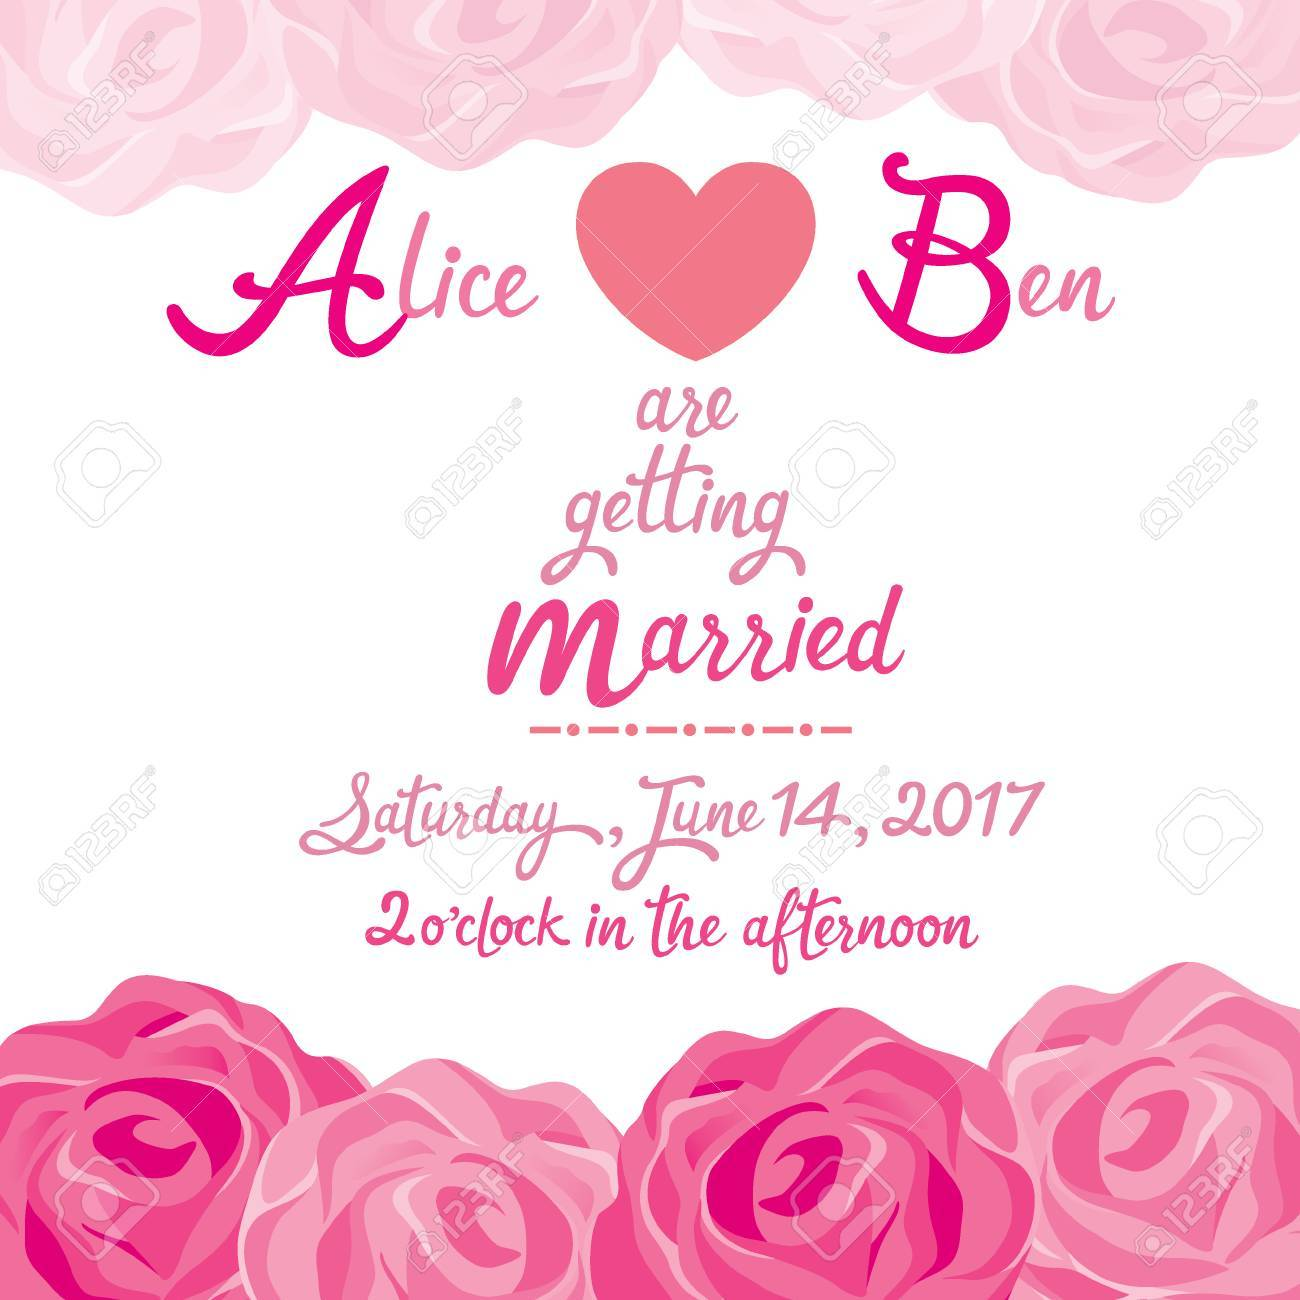 Wedding Invitation Card Template With Rose Frame Love Relationship